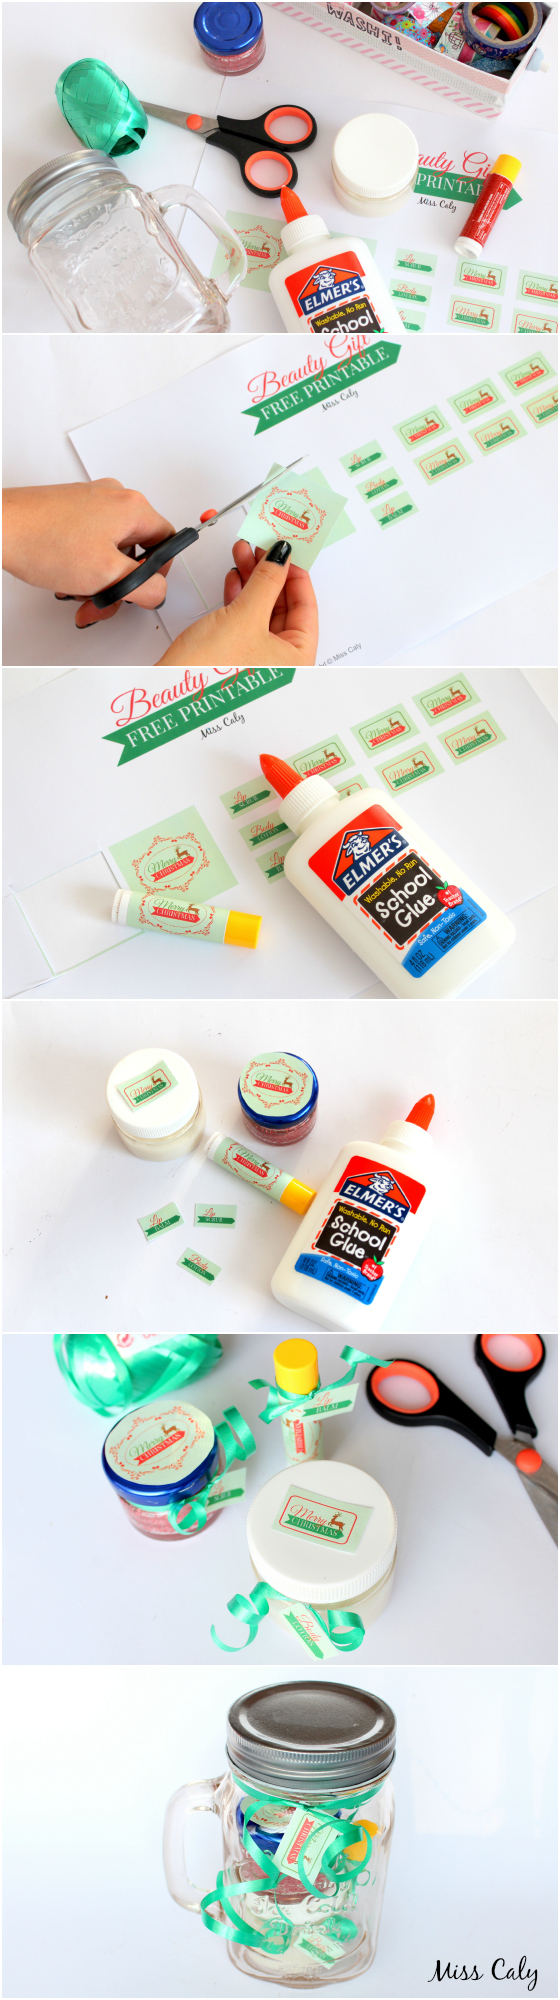 DIY Beauty Gift Set - with Free Printables! By Miss Caly